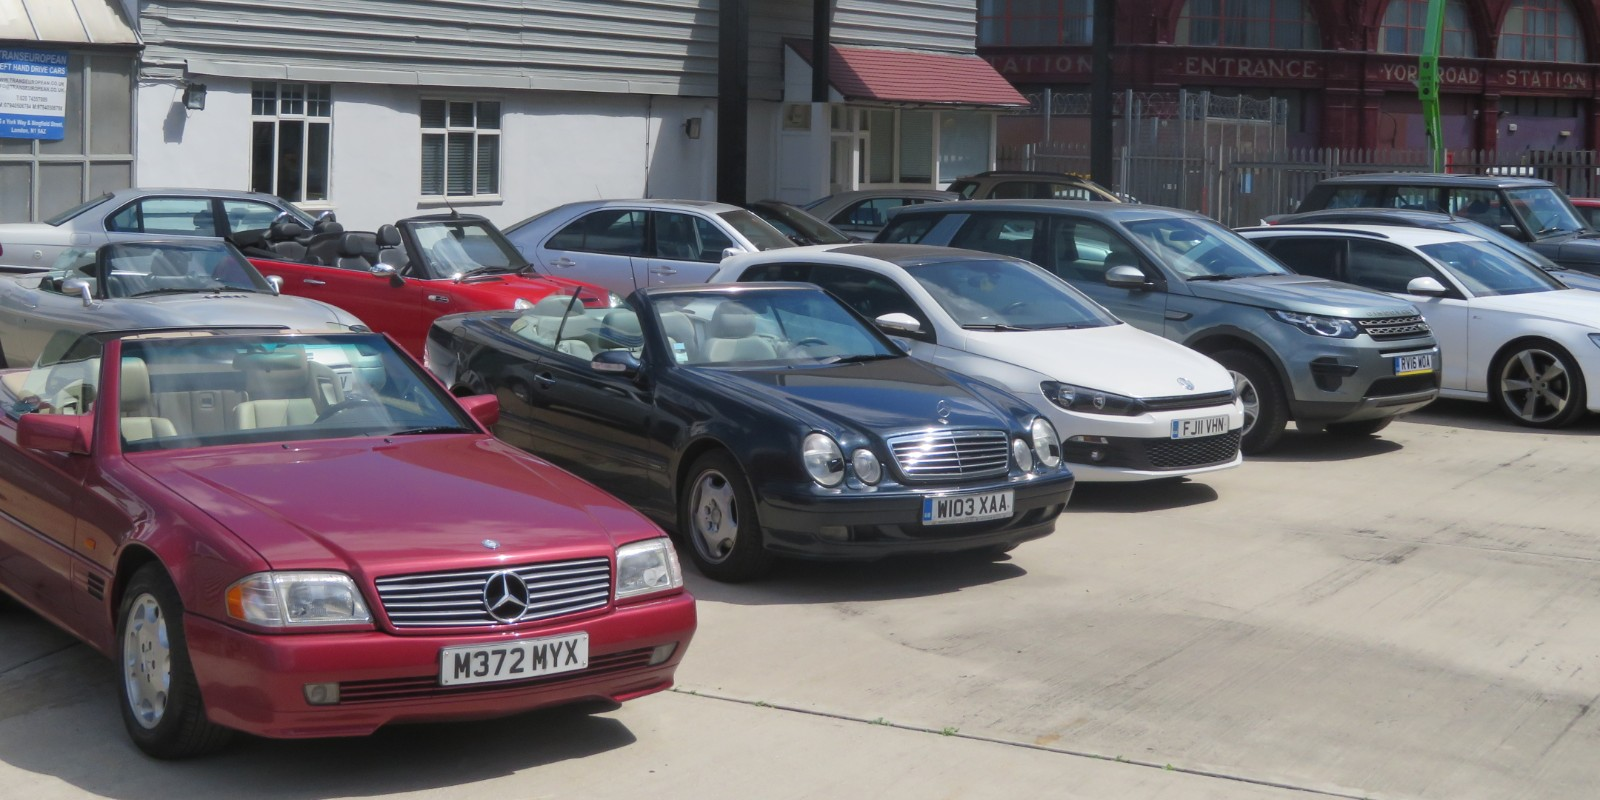 New Used Lhd Left Hand Drive Cars For Sale London Uk